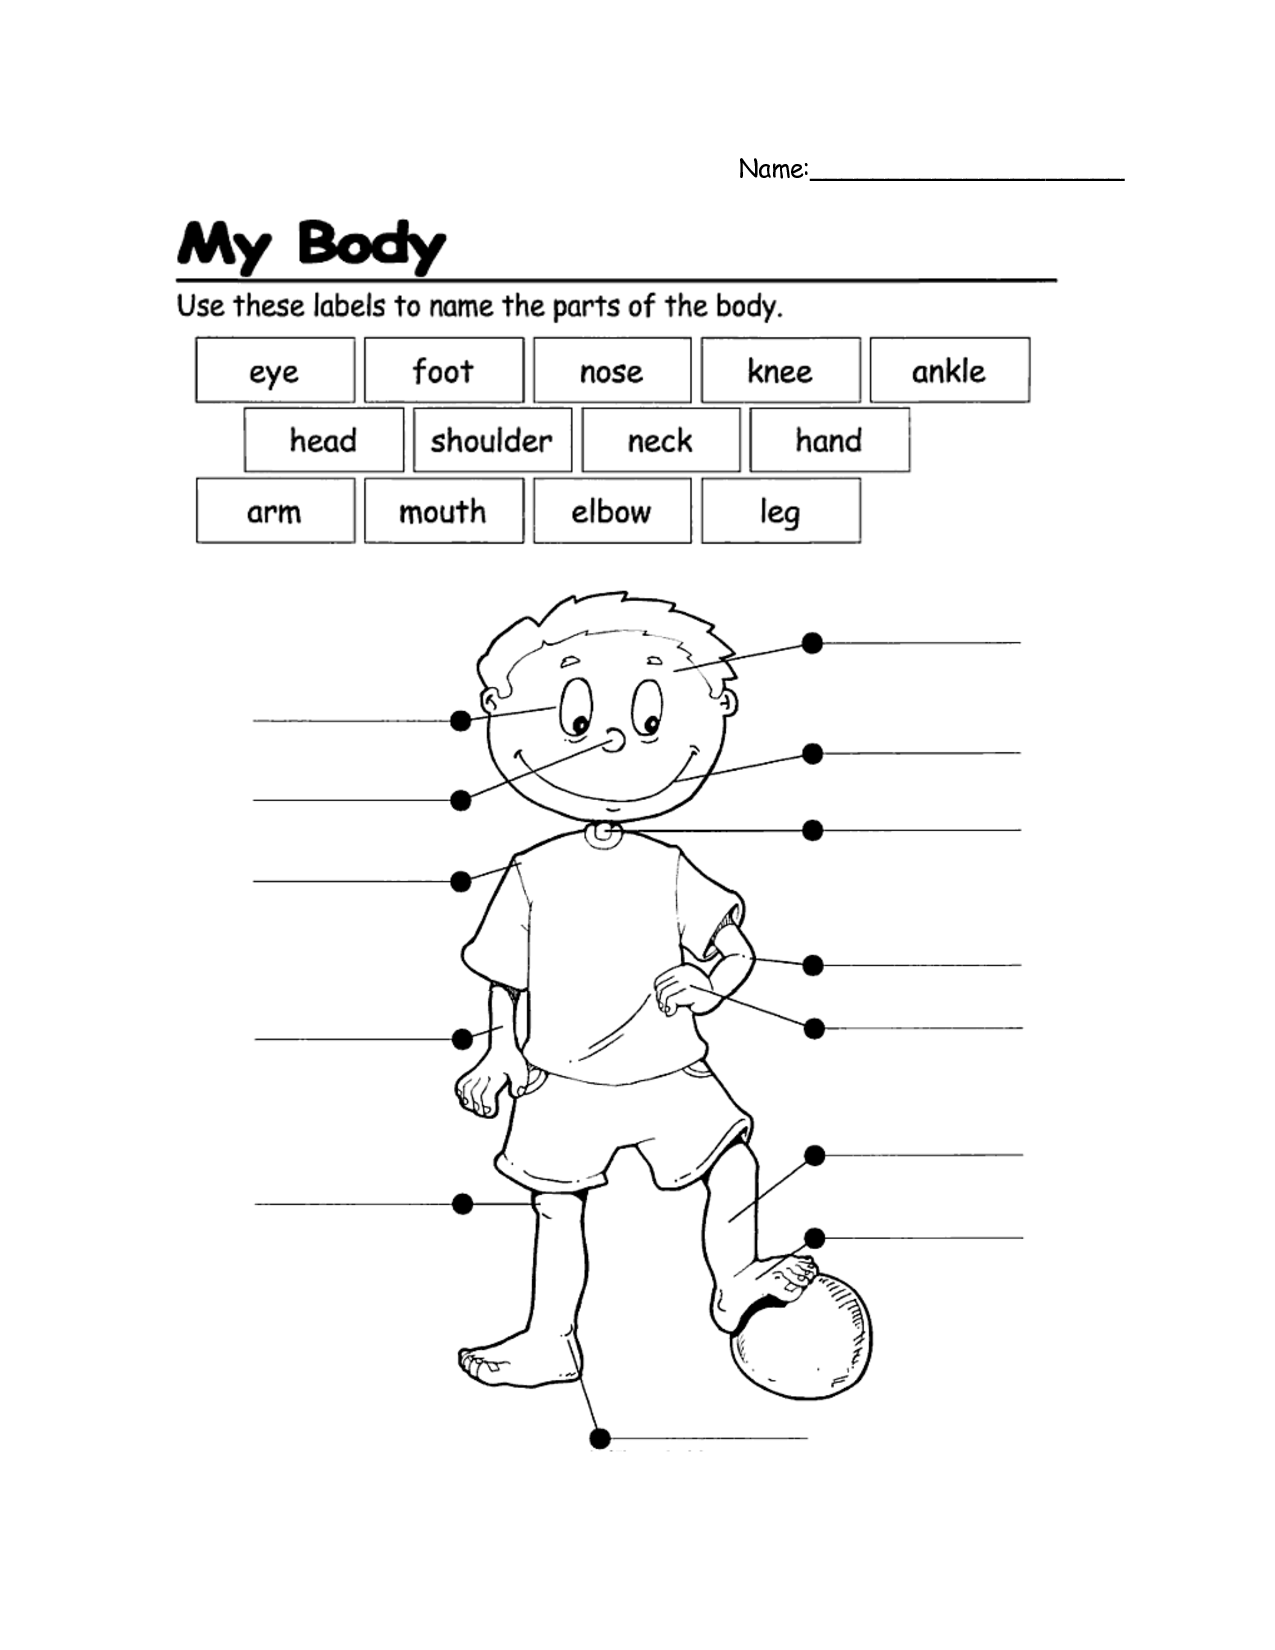 21 awesome label the parts of the body worksheet for kids [ 1275 x 1650 Pixel ]